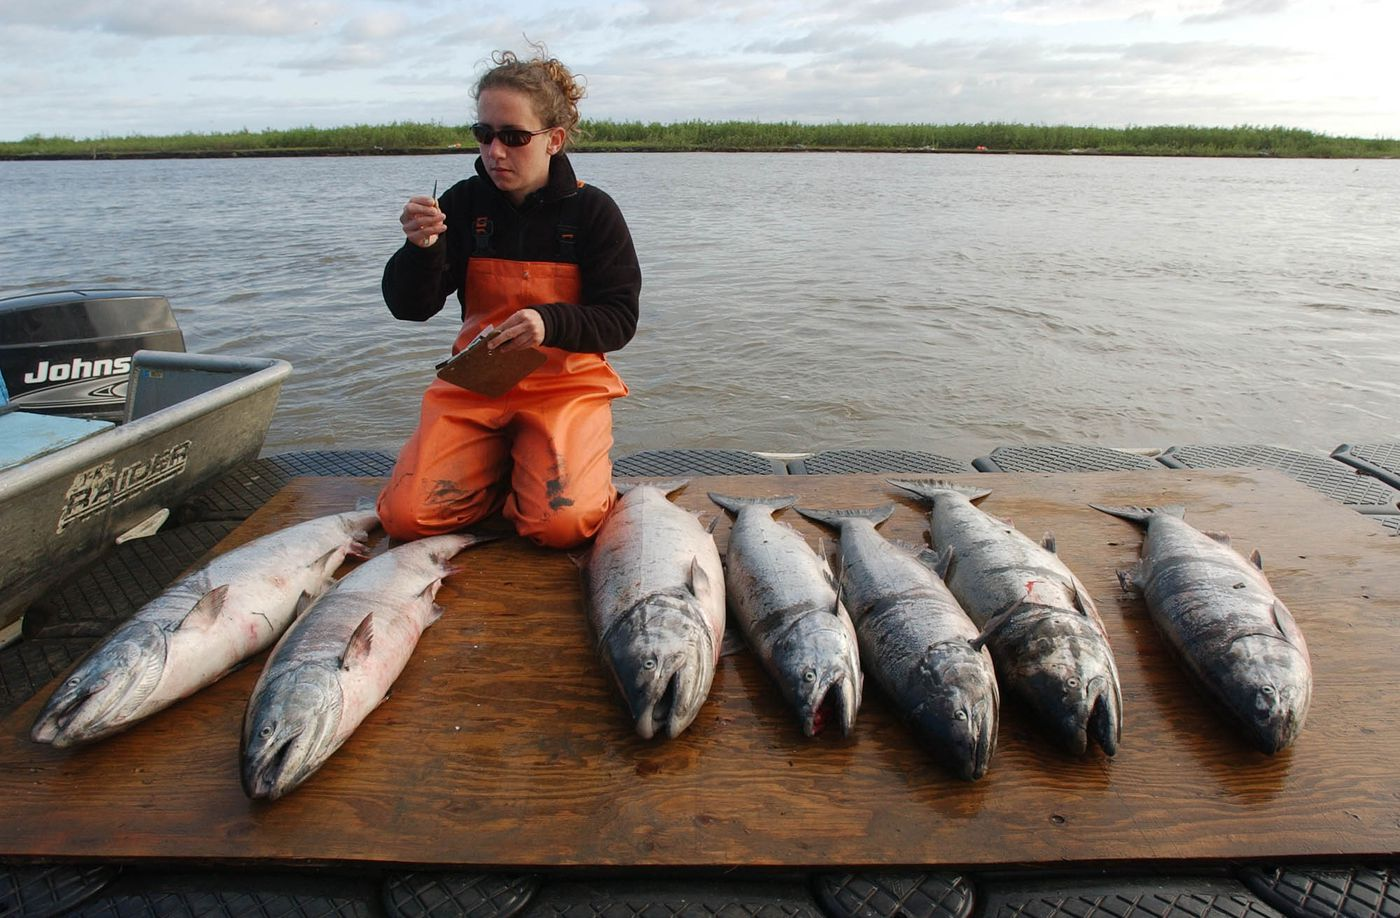 Maureen Horne-Brine collects fish scales from king salmon caught in the Alaska Dept. of Fish and Game test fishery near Emmonak on June 20, 2005. The scales will be used to determine the age the fish. She was helping fishery biologist Larry DuBois conduct a study of Ichthyophonus, a disease first noticed in some Yukon River fish in the late 1980s.